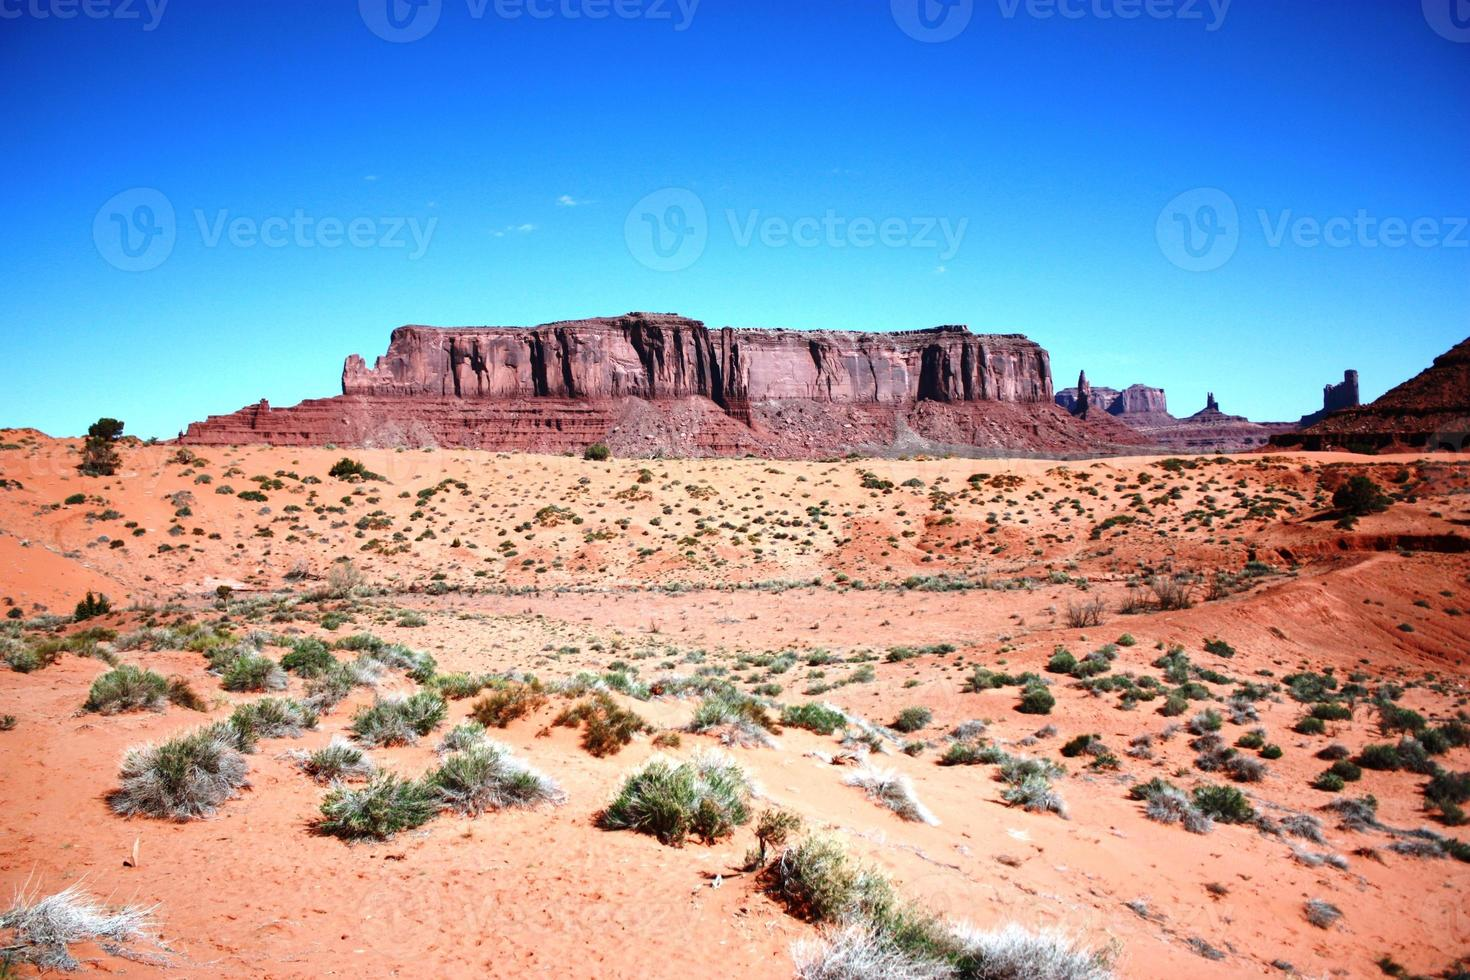 View to Mitchell Mesa in Monument Valley Navajo Tribal Park photo